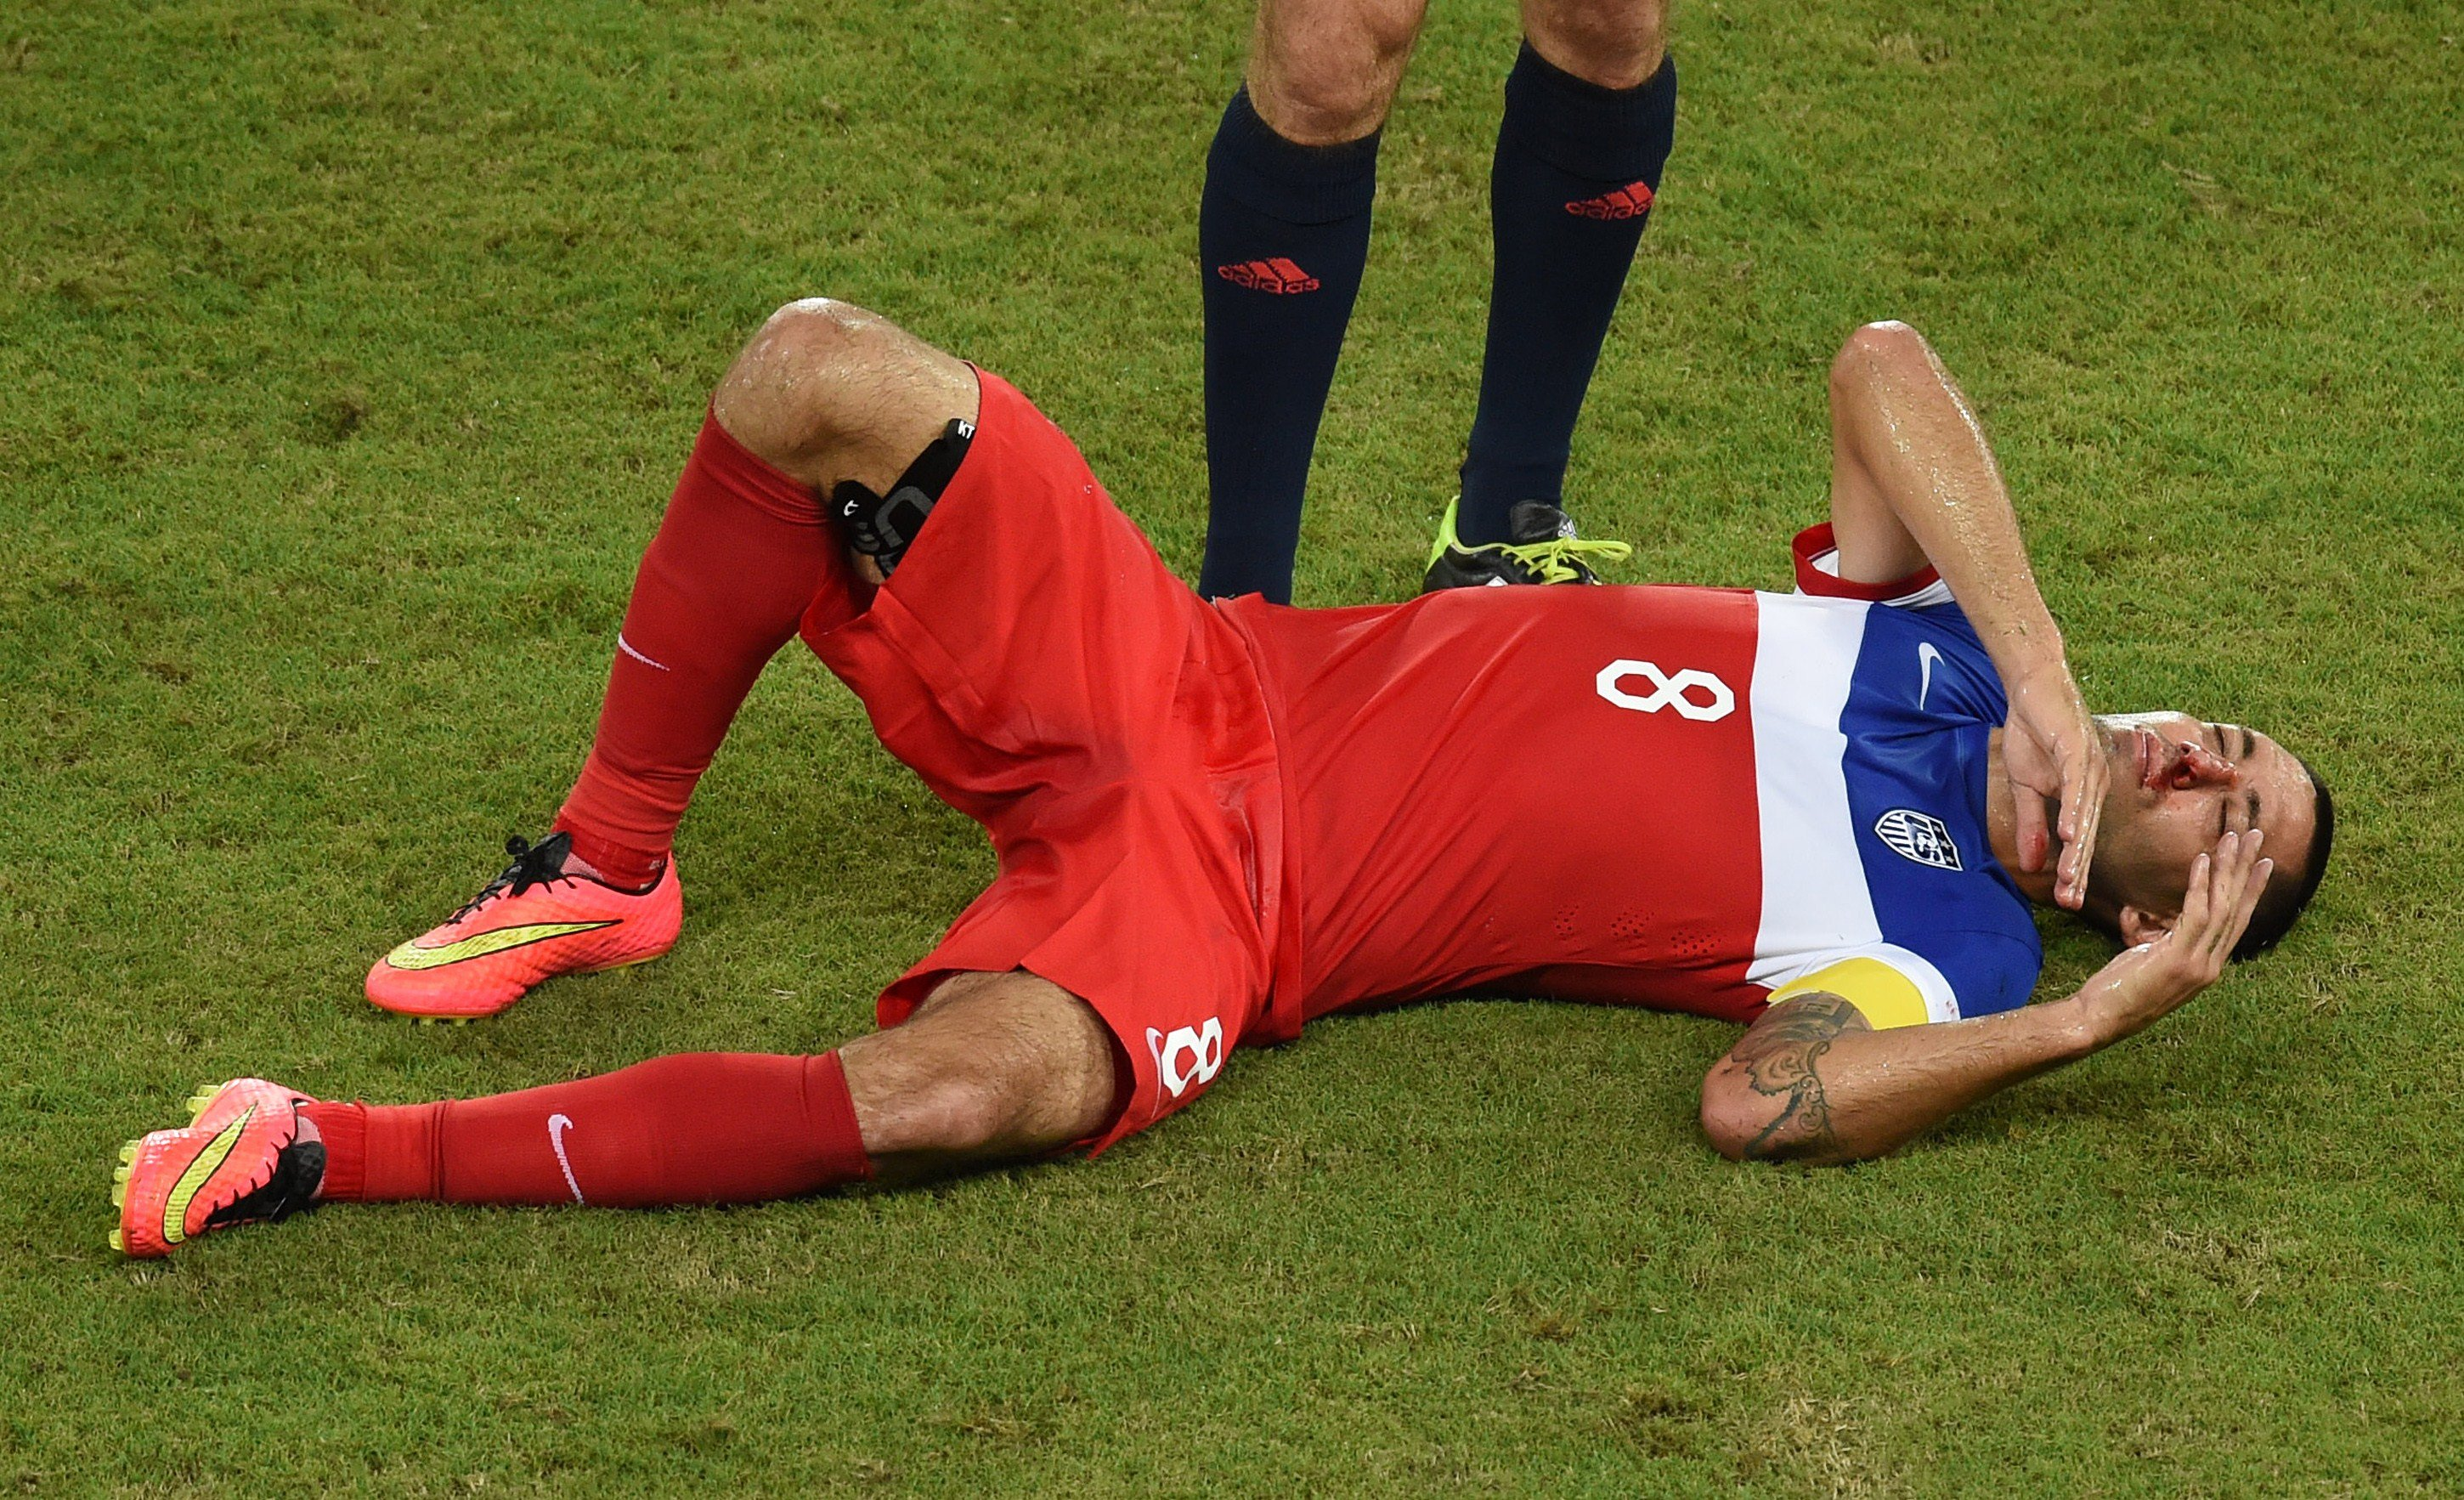 US forward Clint Dempsey bleeds from the nose after colliding with Ghana's defender John Boye during a Group G football match between Ghana and US at the Dunas Arena in Natal during the 2014 FIFA World Cup on June 16, 2014.